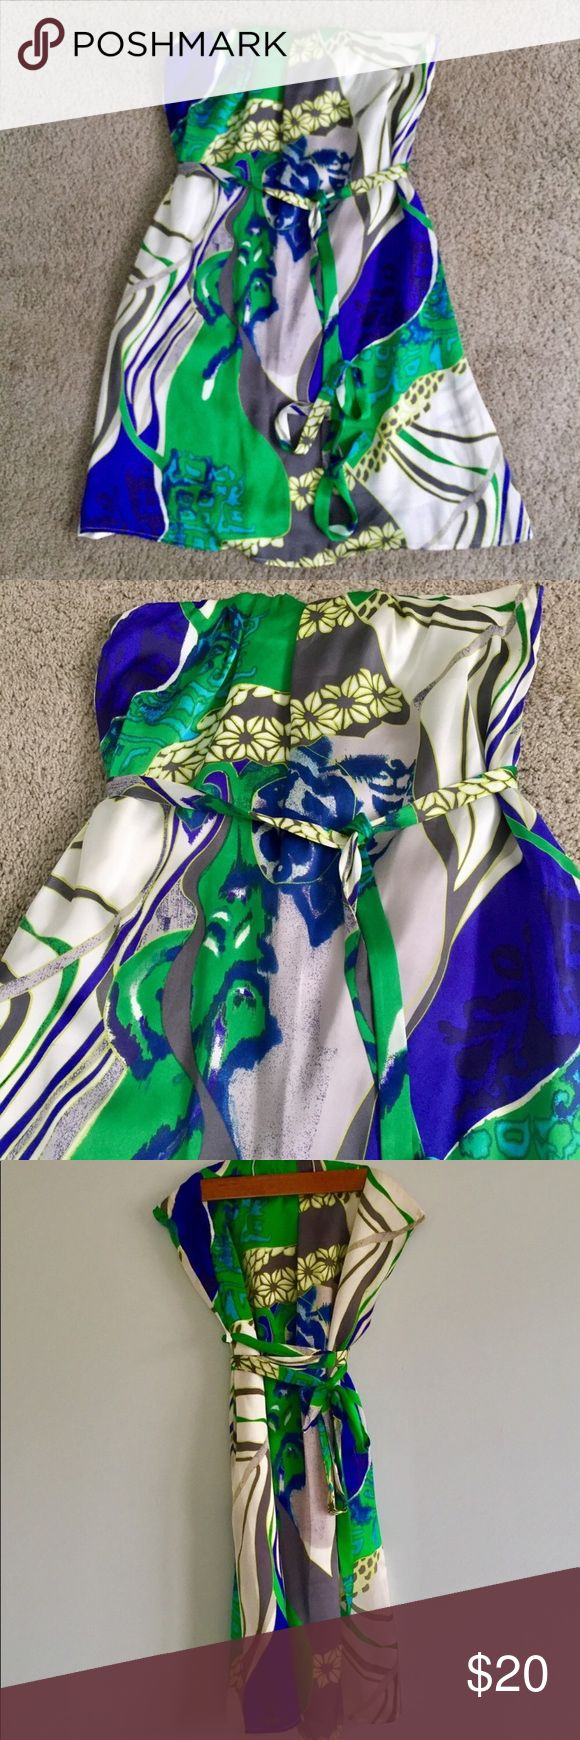 Strapless Tropical Print Dress Purchased at a boutique in NYC. Worn 1x and has been dry cleaned. Fun dress for the summer, girl's night out, date night, etc. has a cloth belt to accentuate waist. Elasticated top - had no problems with slipping. Size is large but I provided photos of measurements. No trade Dresses Strapless